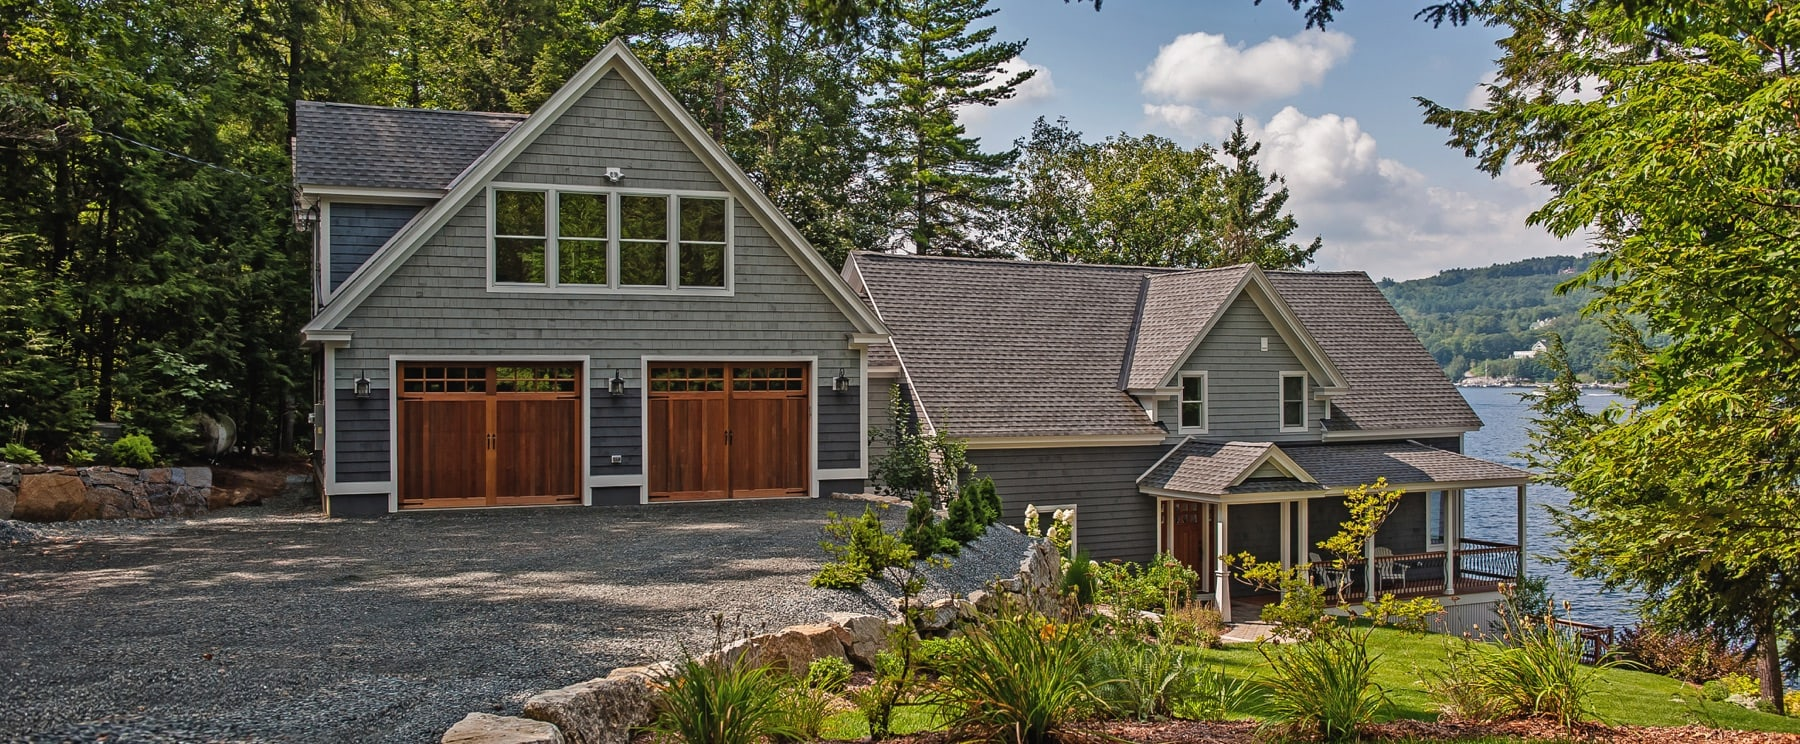 Garage Door Parts Near My Location Fimbel Garage Doors New Hampshire S Garage Door Experts